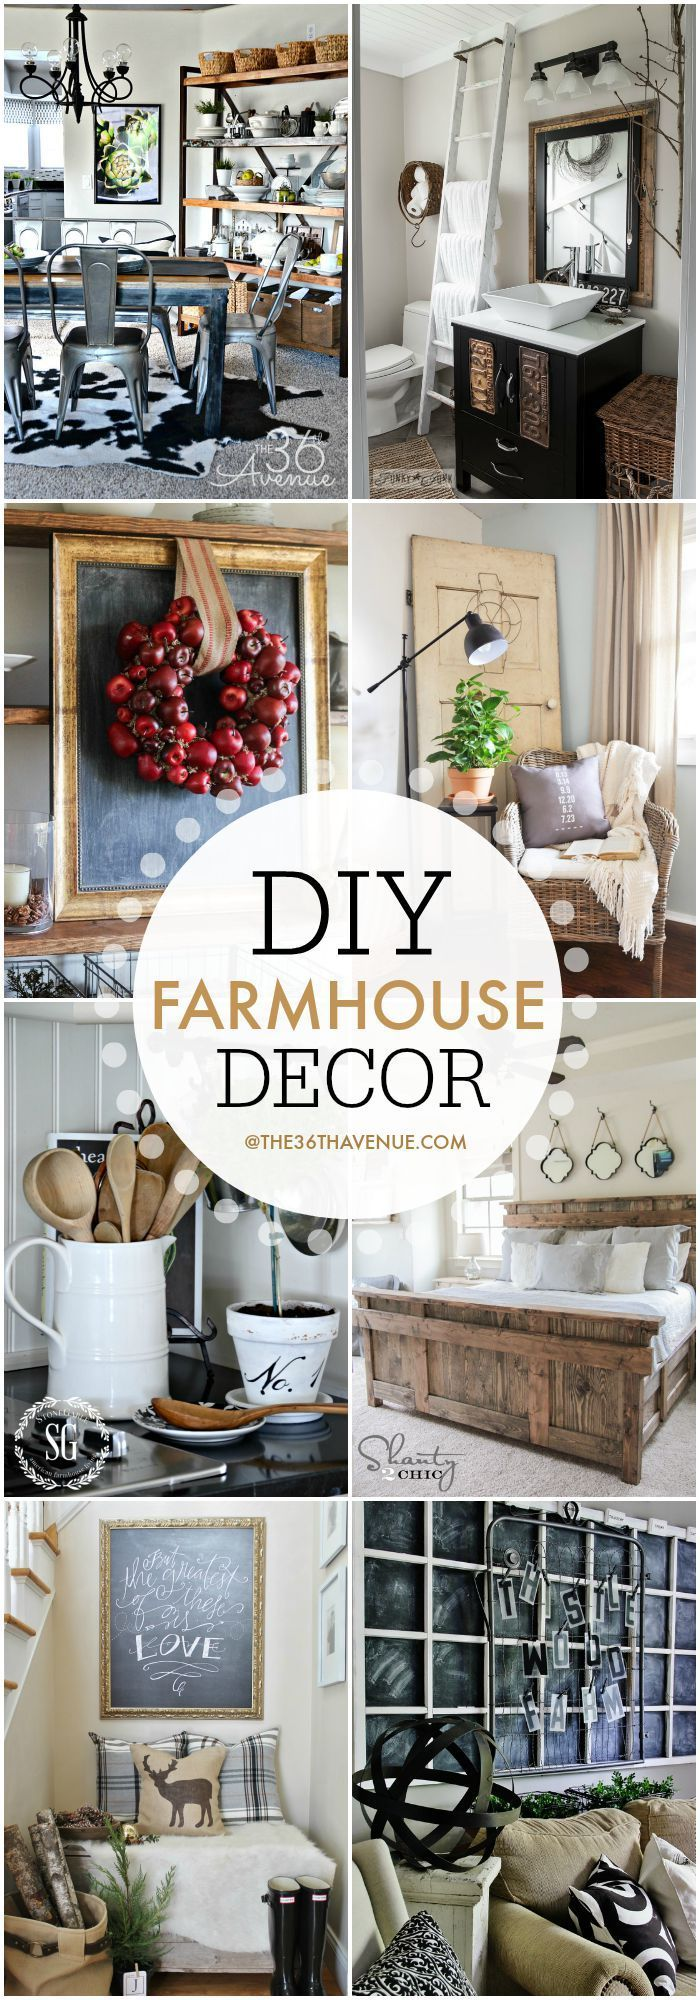 DIY Crafts : Home Decor - DIY Farmhouse Decor Ideas at the36thavenue ...